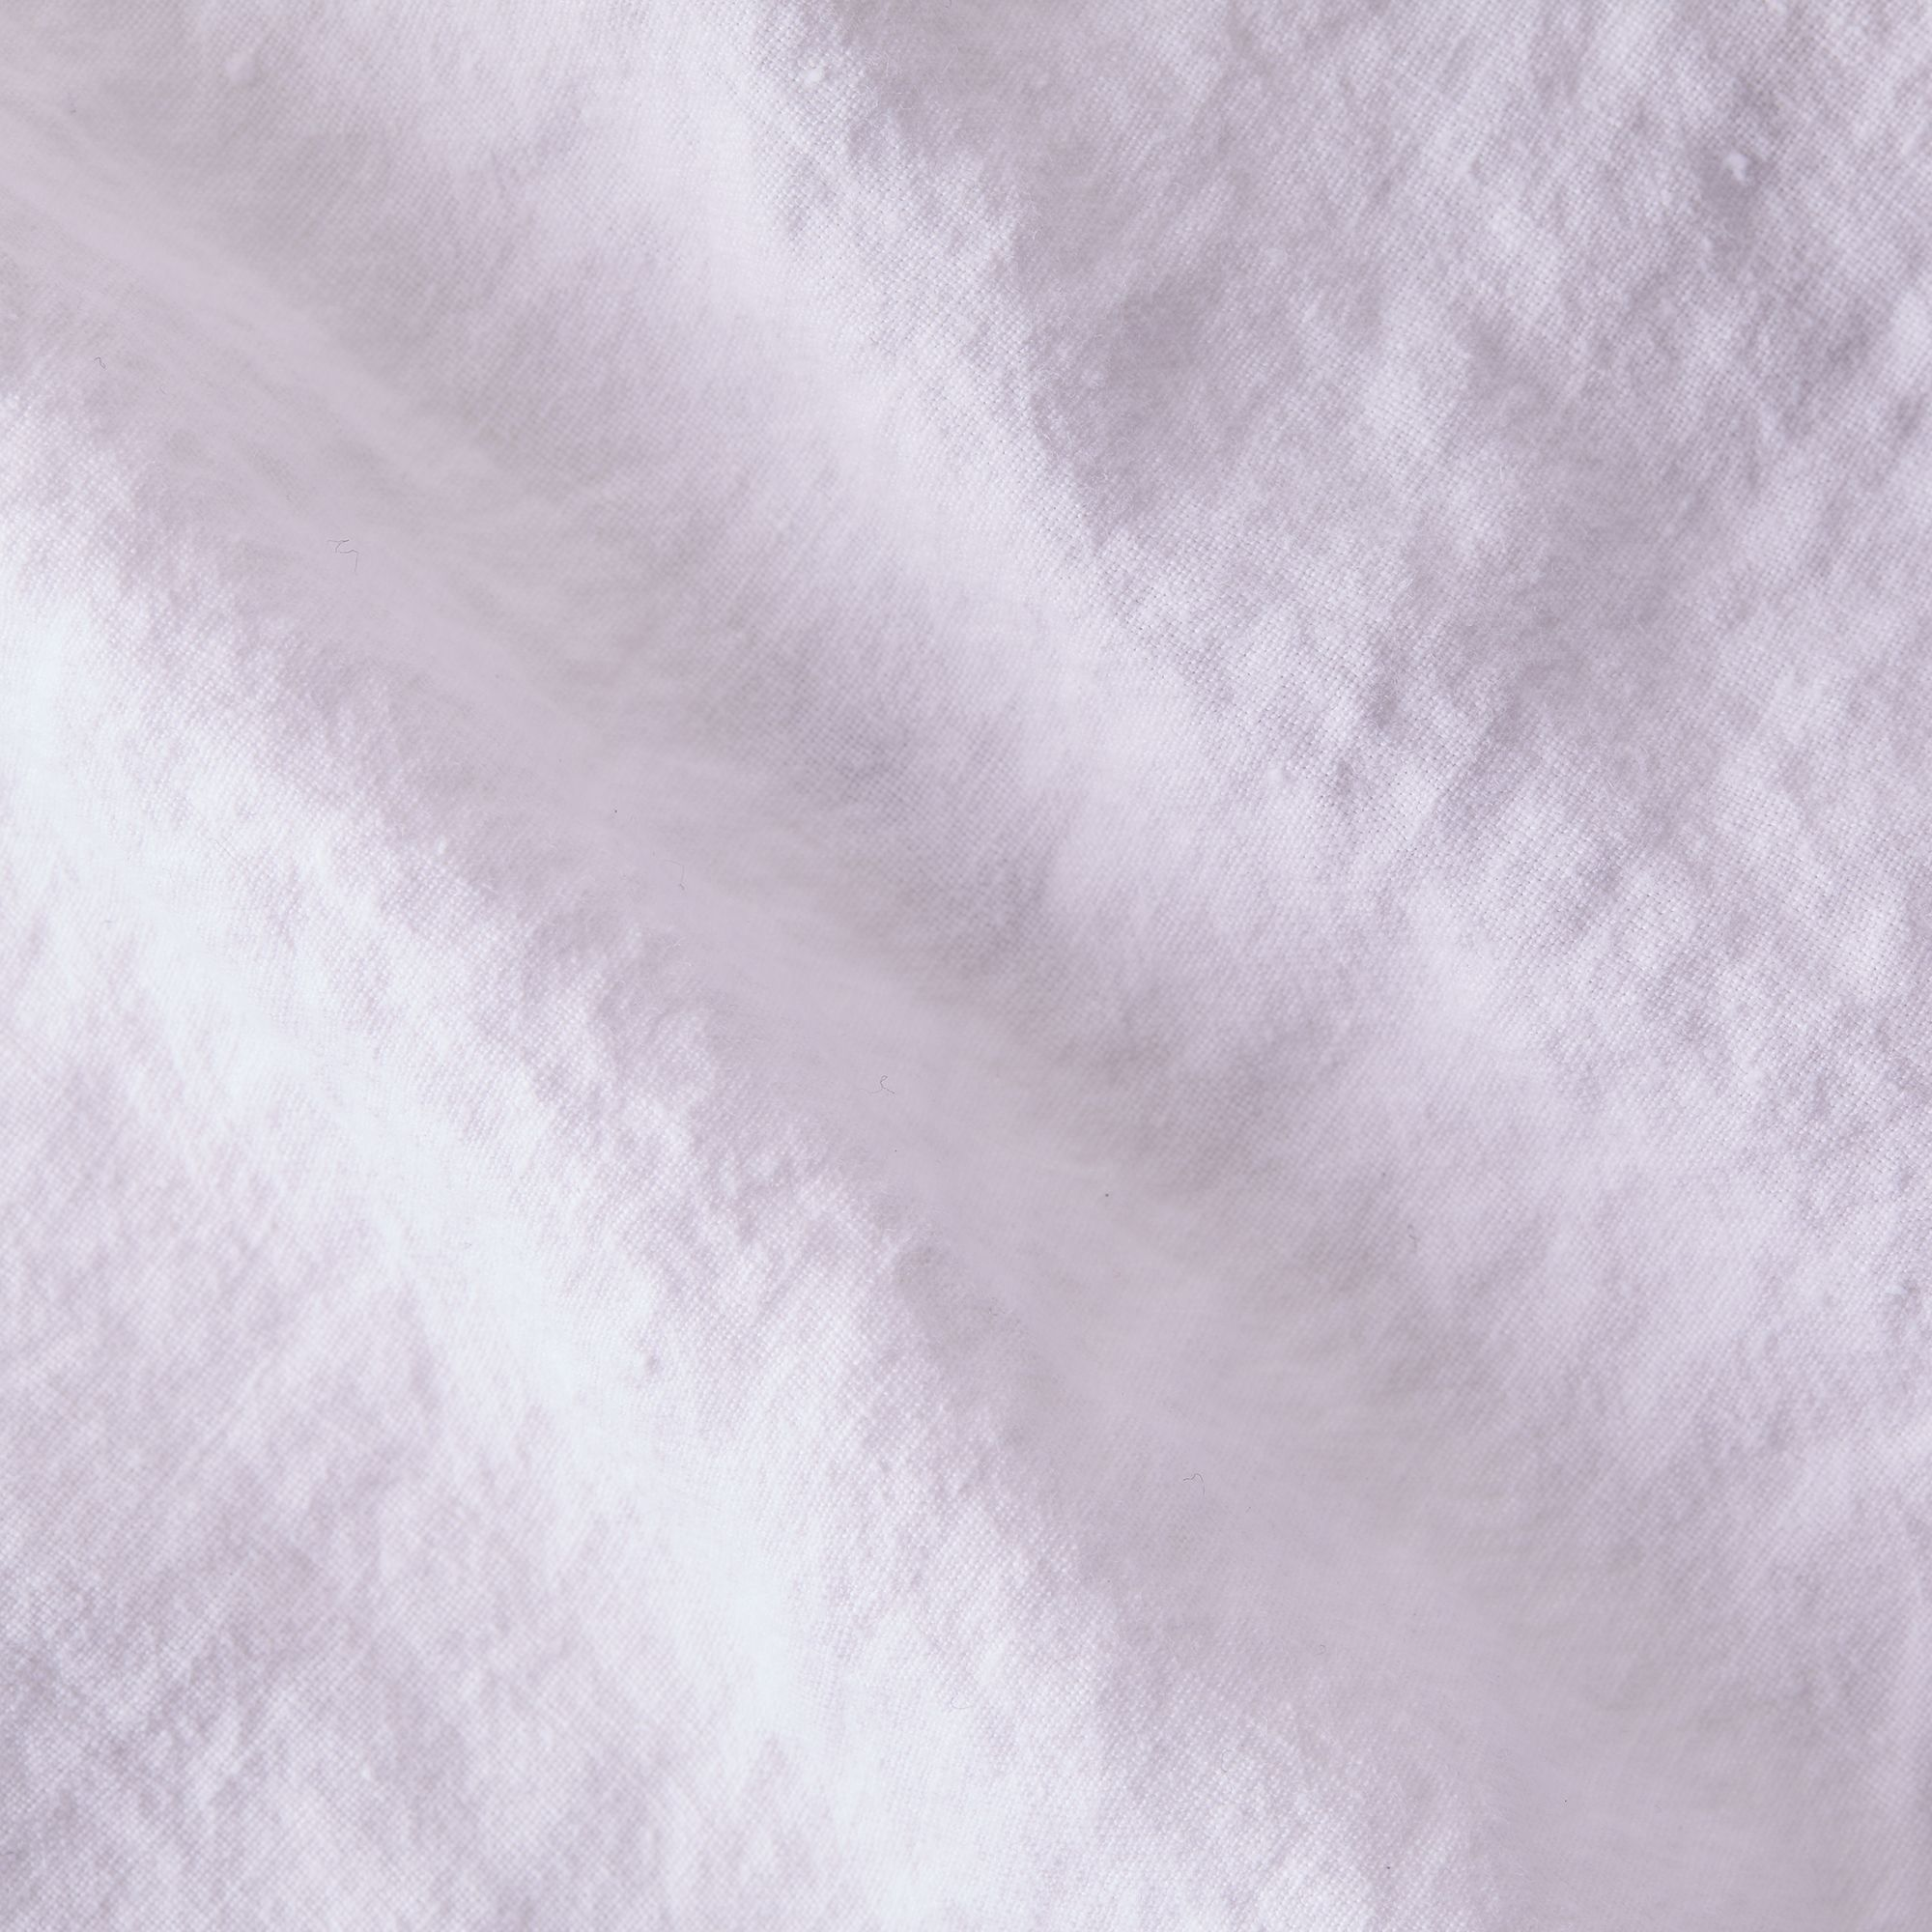 0bd89e01 0482 4c33 ad5f c0e0d6ca4027  2018 0129 hawkins new york stonewashed linen bedding petal swatch silo ty mecham 010 1